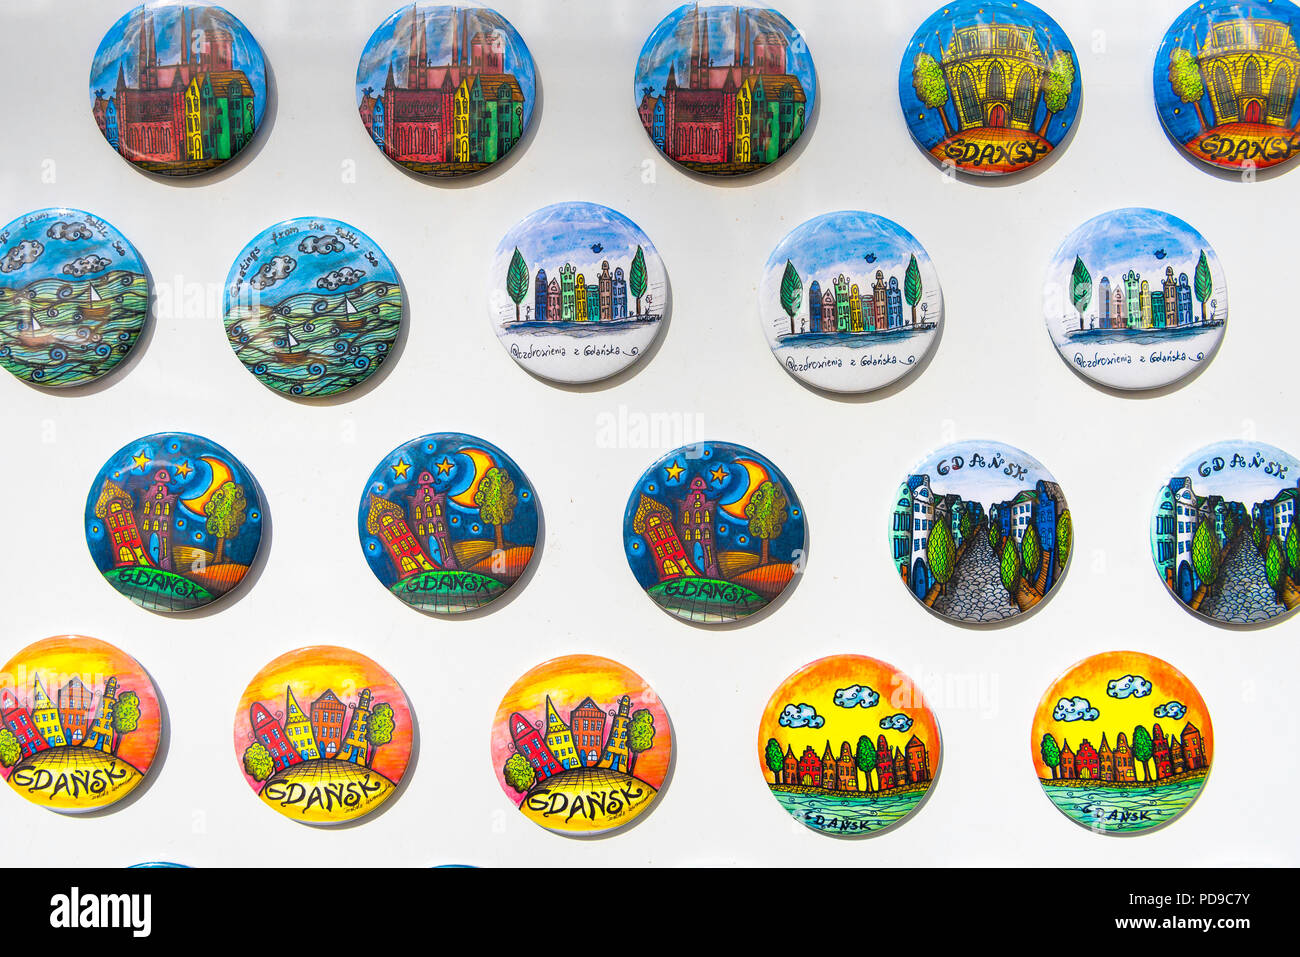 Gdansk souvenir, a display of colorful souvenir badges illustrating